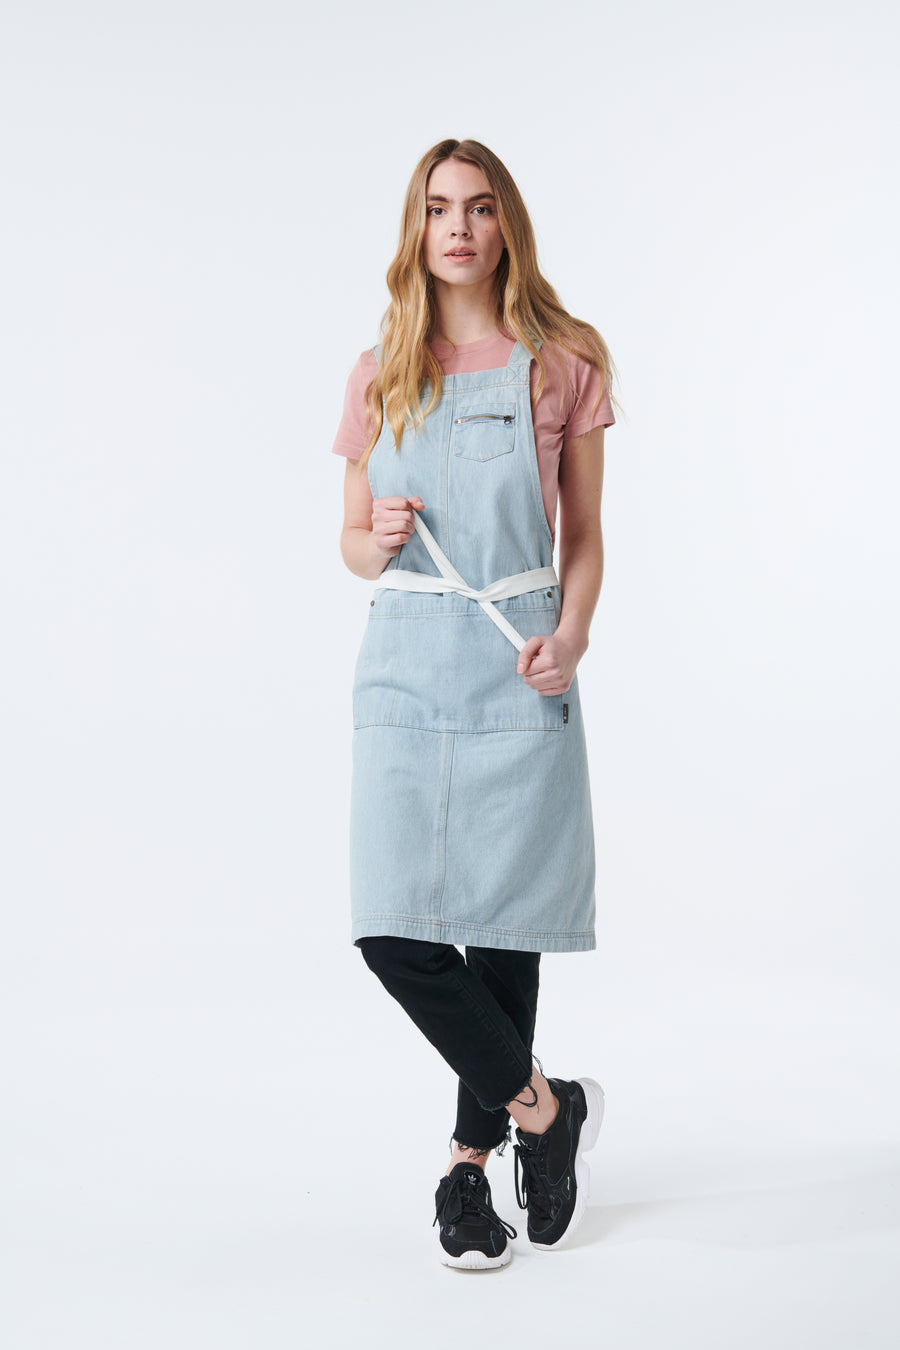 HAMPTON 2 Pocket Apron - BLEACHED DENIM